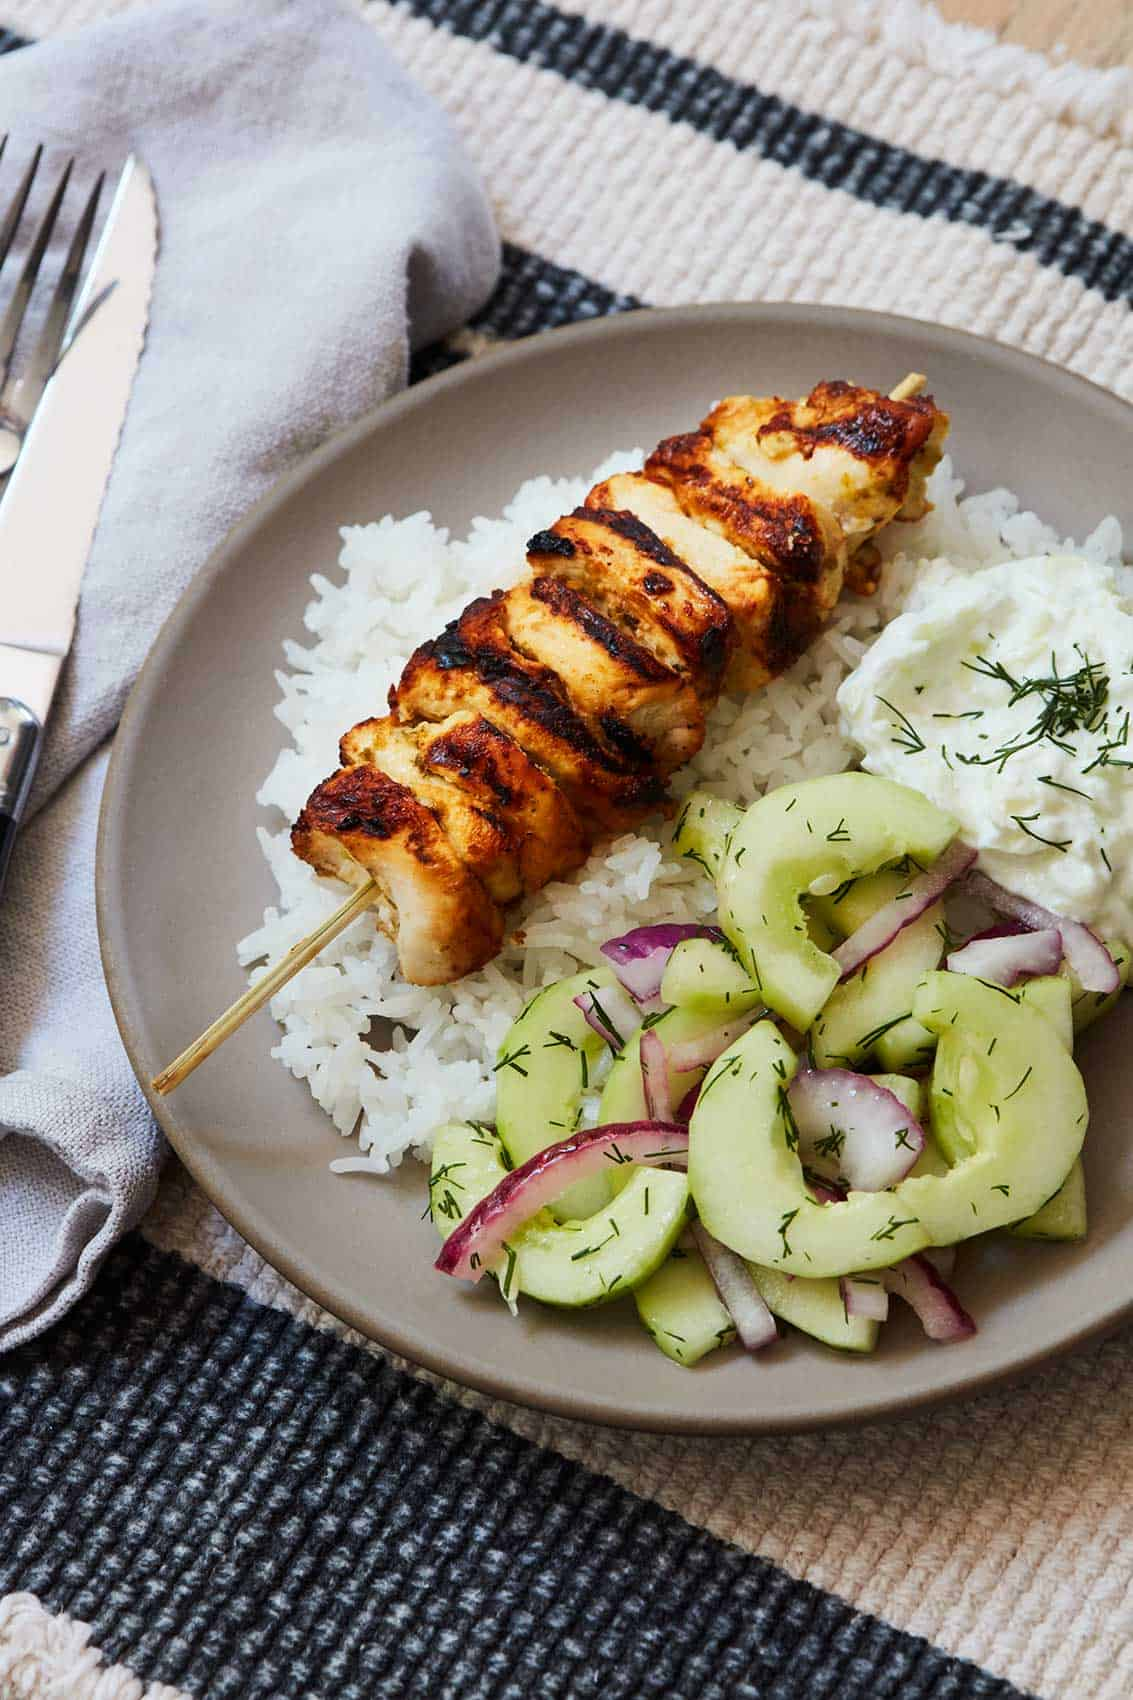 Chicken Skewers with Cucumber Salad and Tzatziki served on a gray plate